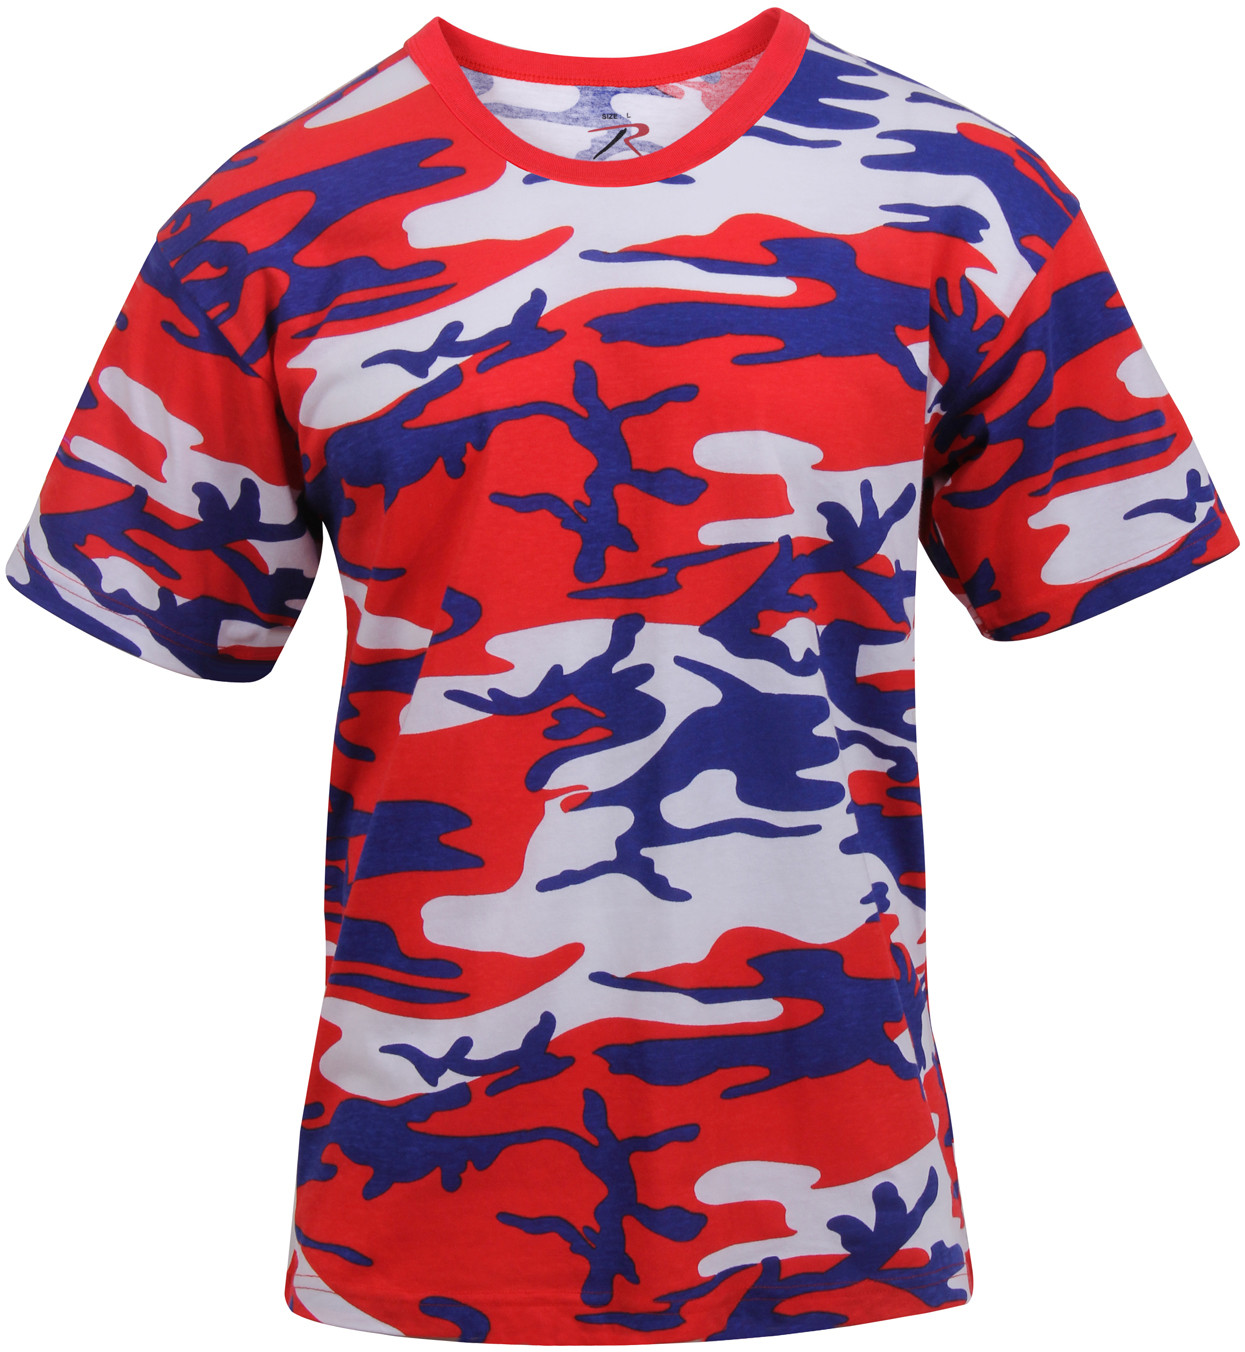 Red White Blue Camouflage Military Short Sleeve T-Shirt 722202d65c1